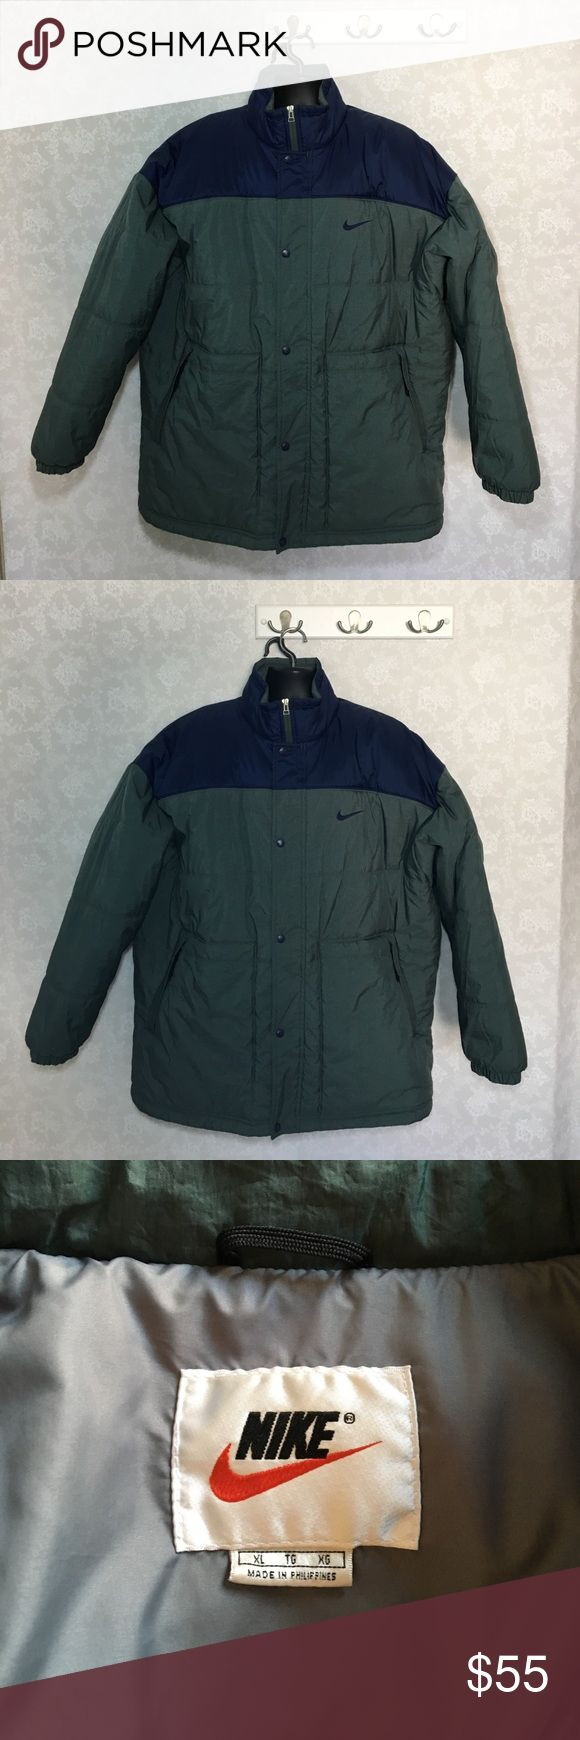 Nike Winter Jacket Excellent pre-owned condition! Nike Jackets & Coats